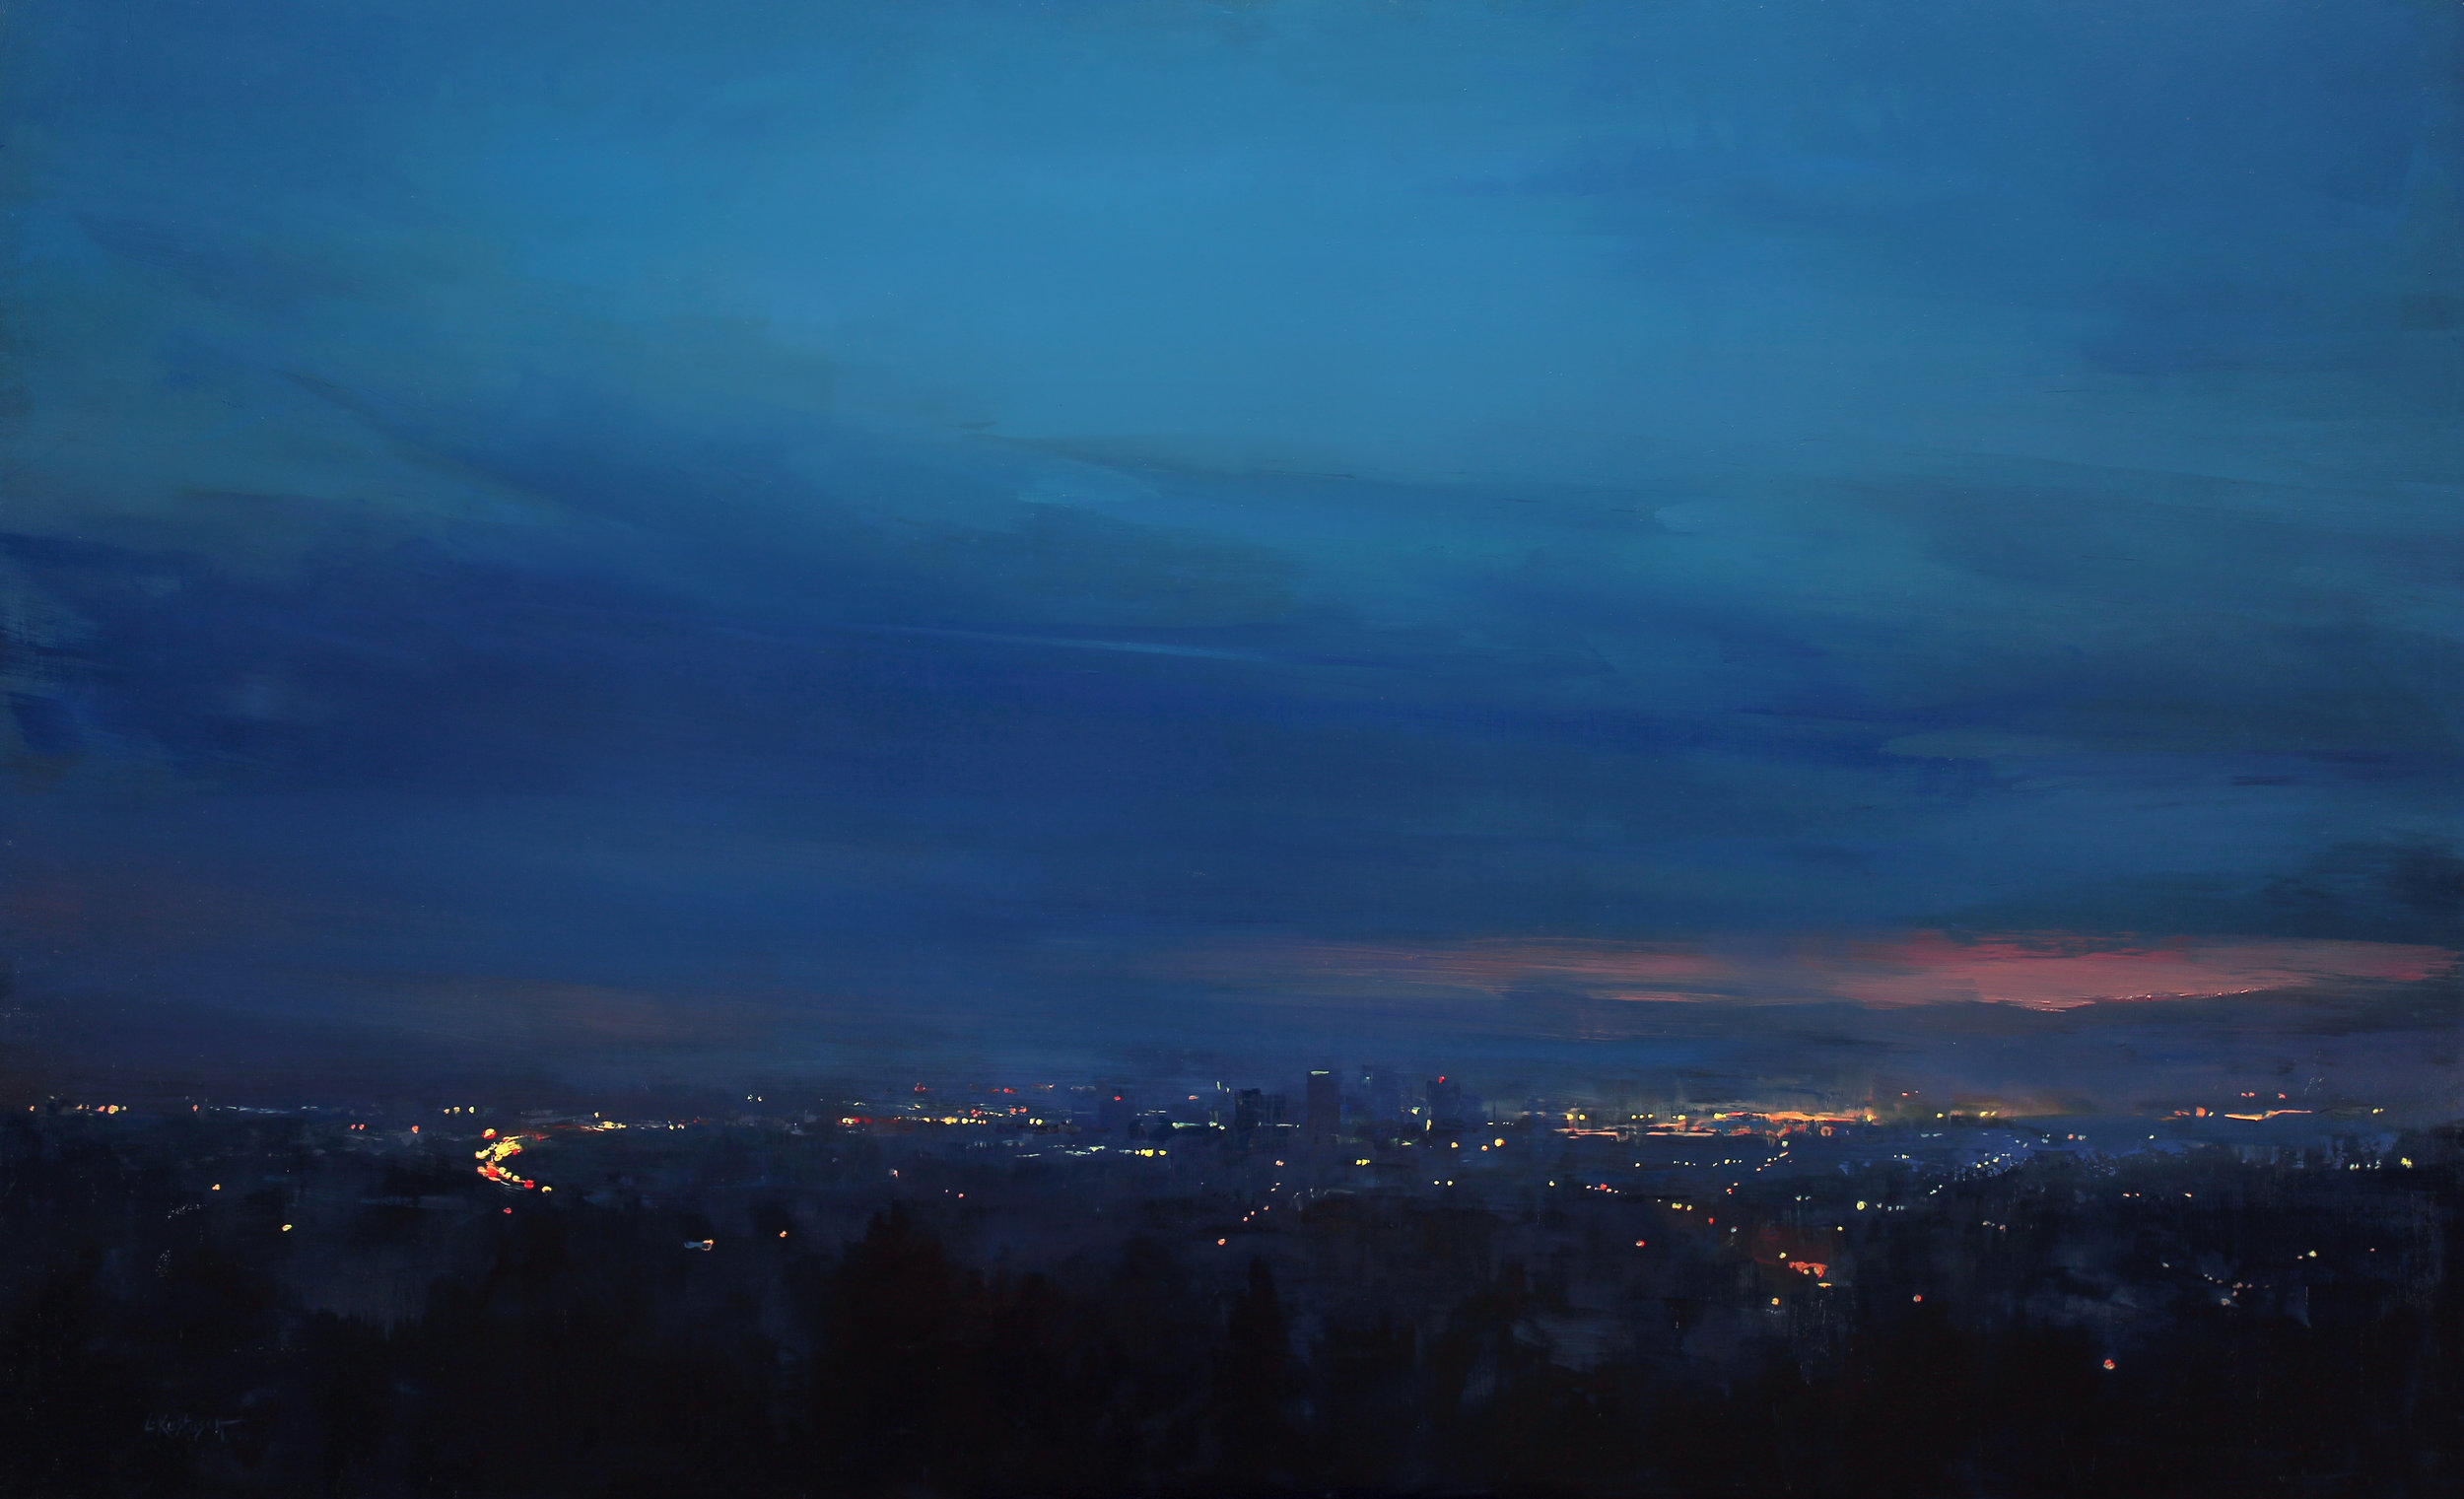 Night Falls Over the City